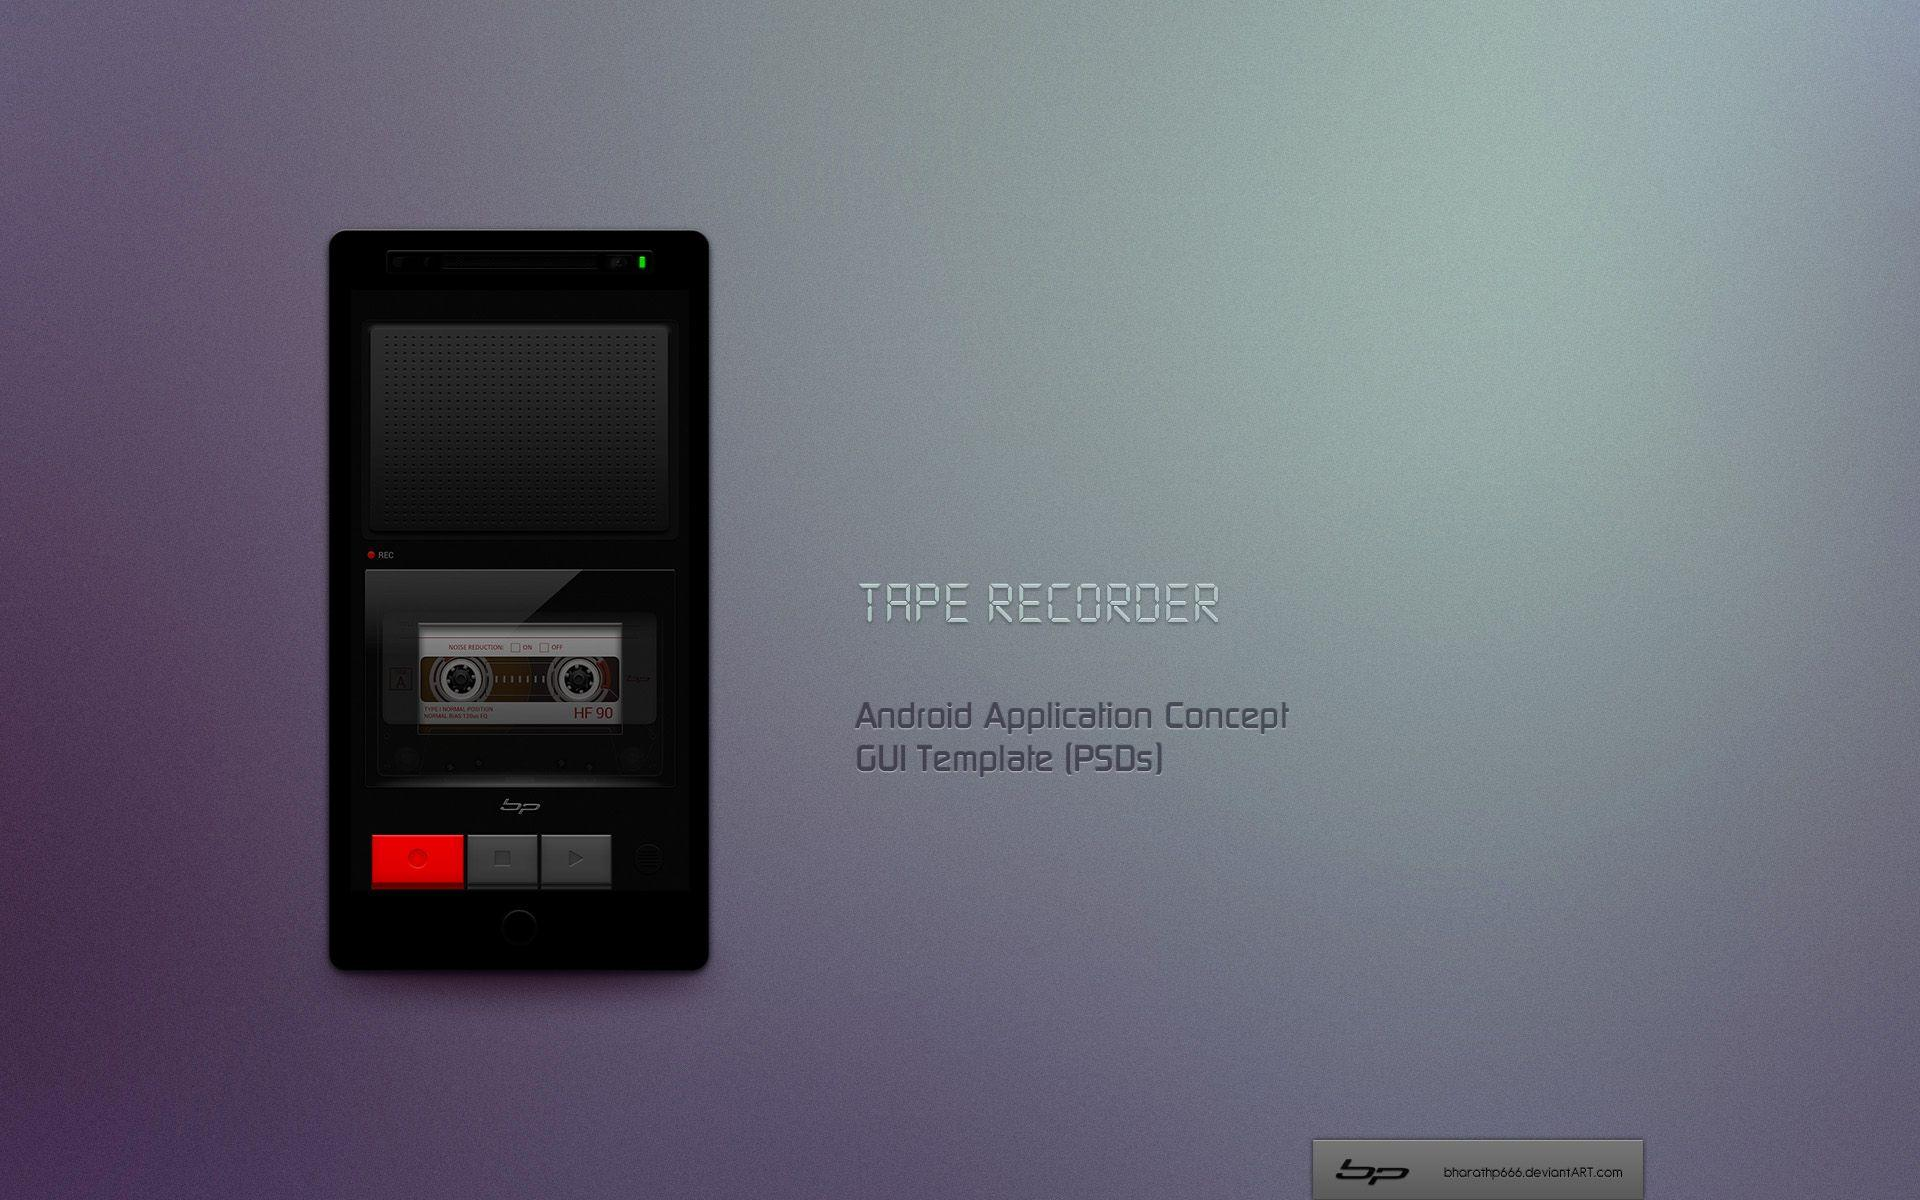 Android: Tape Recorder App. Concept by bharathp666 on DeviantArt